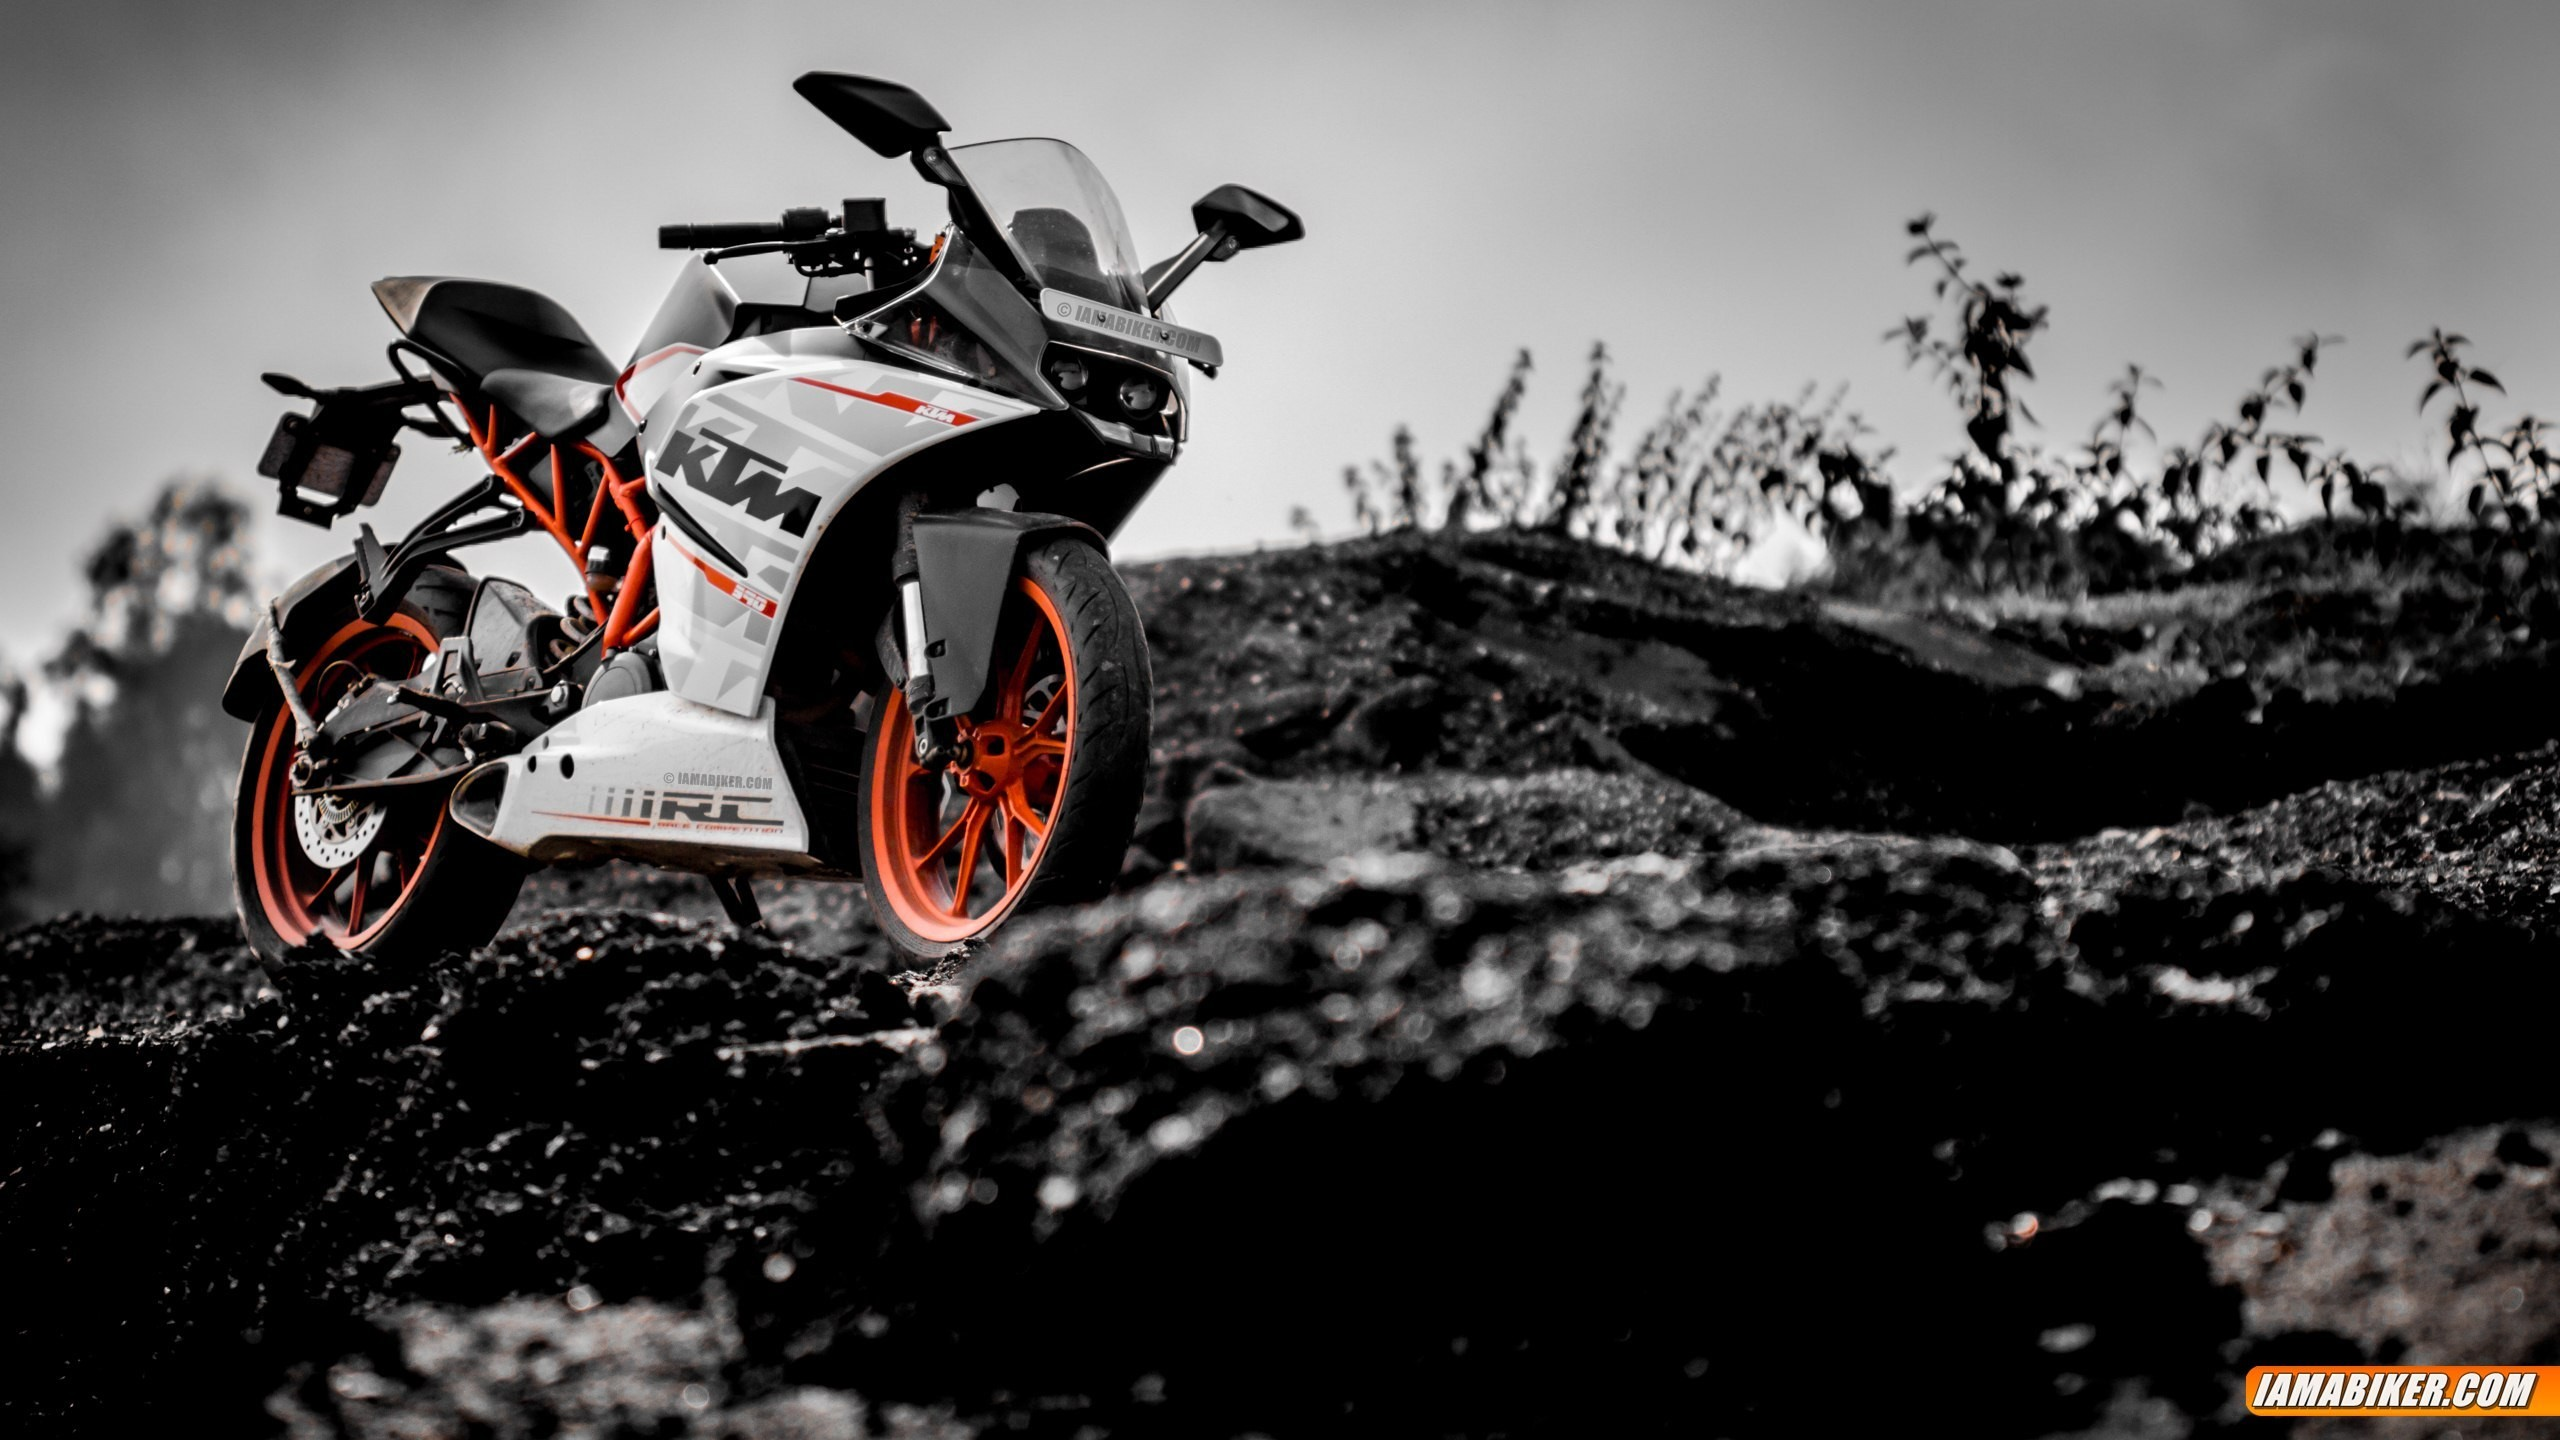 KTM RC 390 wallpapers – 6